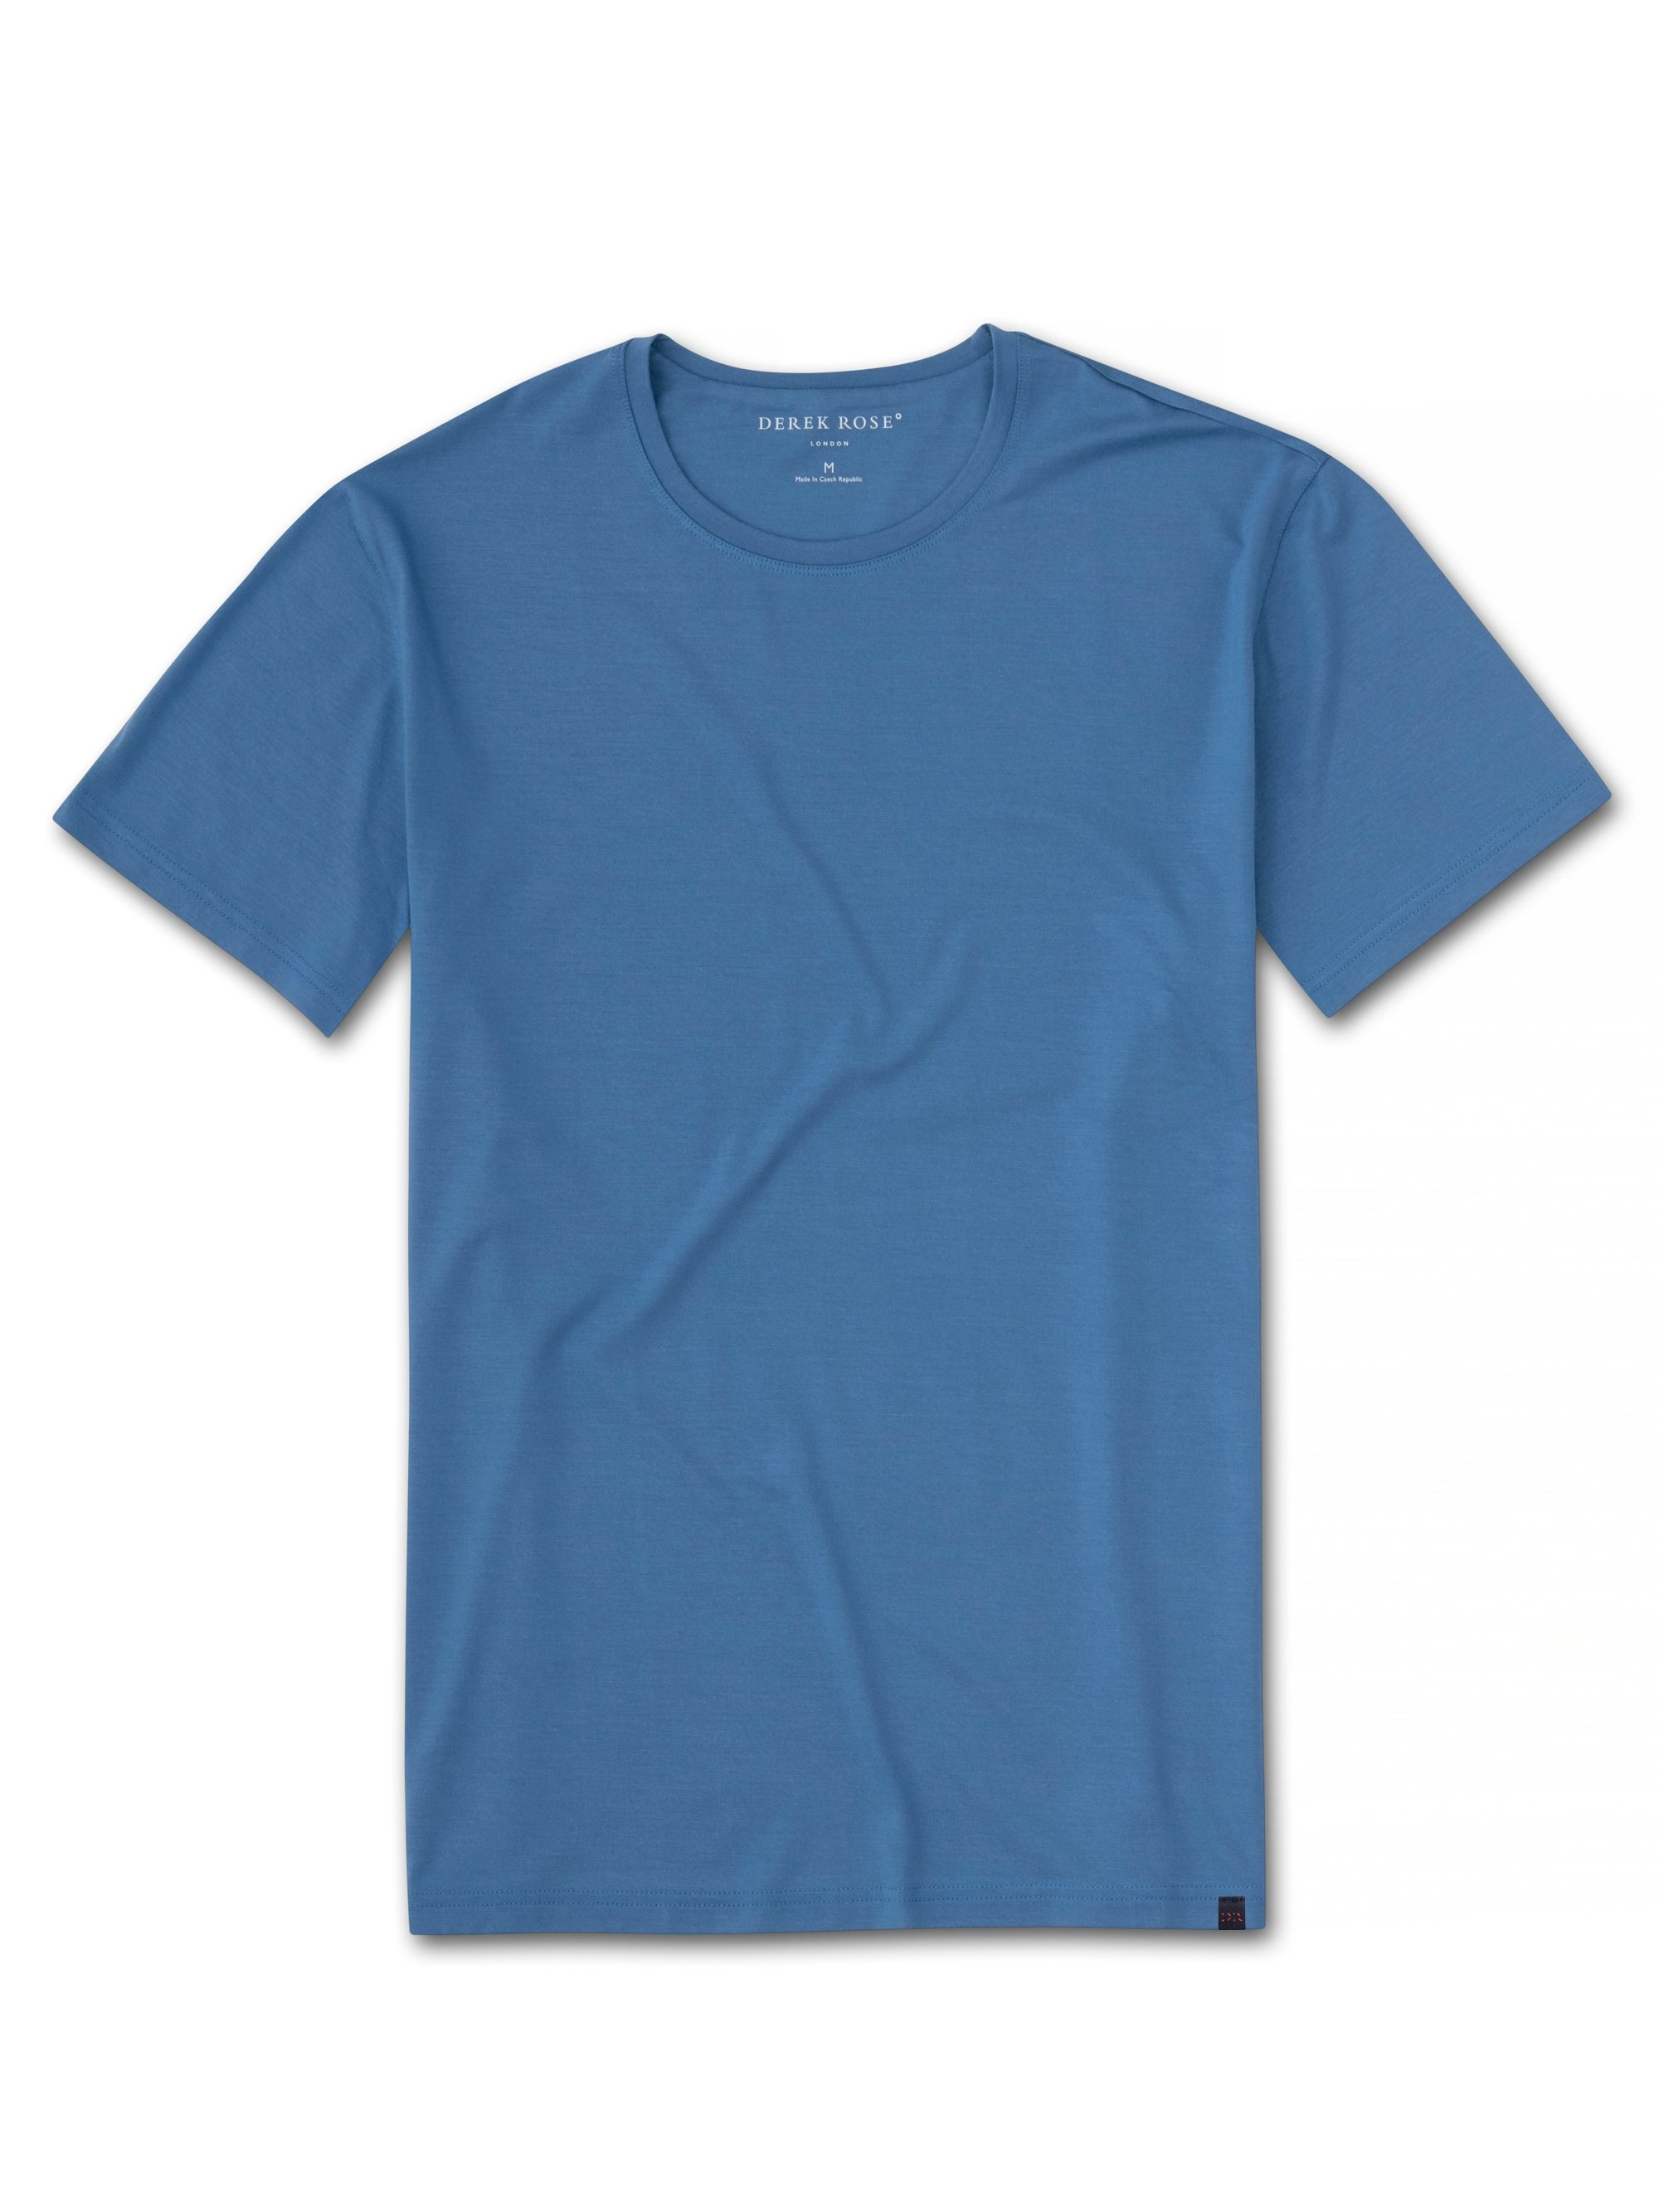 Men's Short Sleeve T-Shirt Basel 9 Micro Modal Stretch Blue